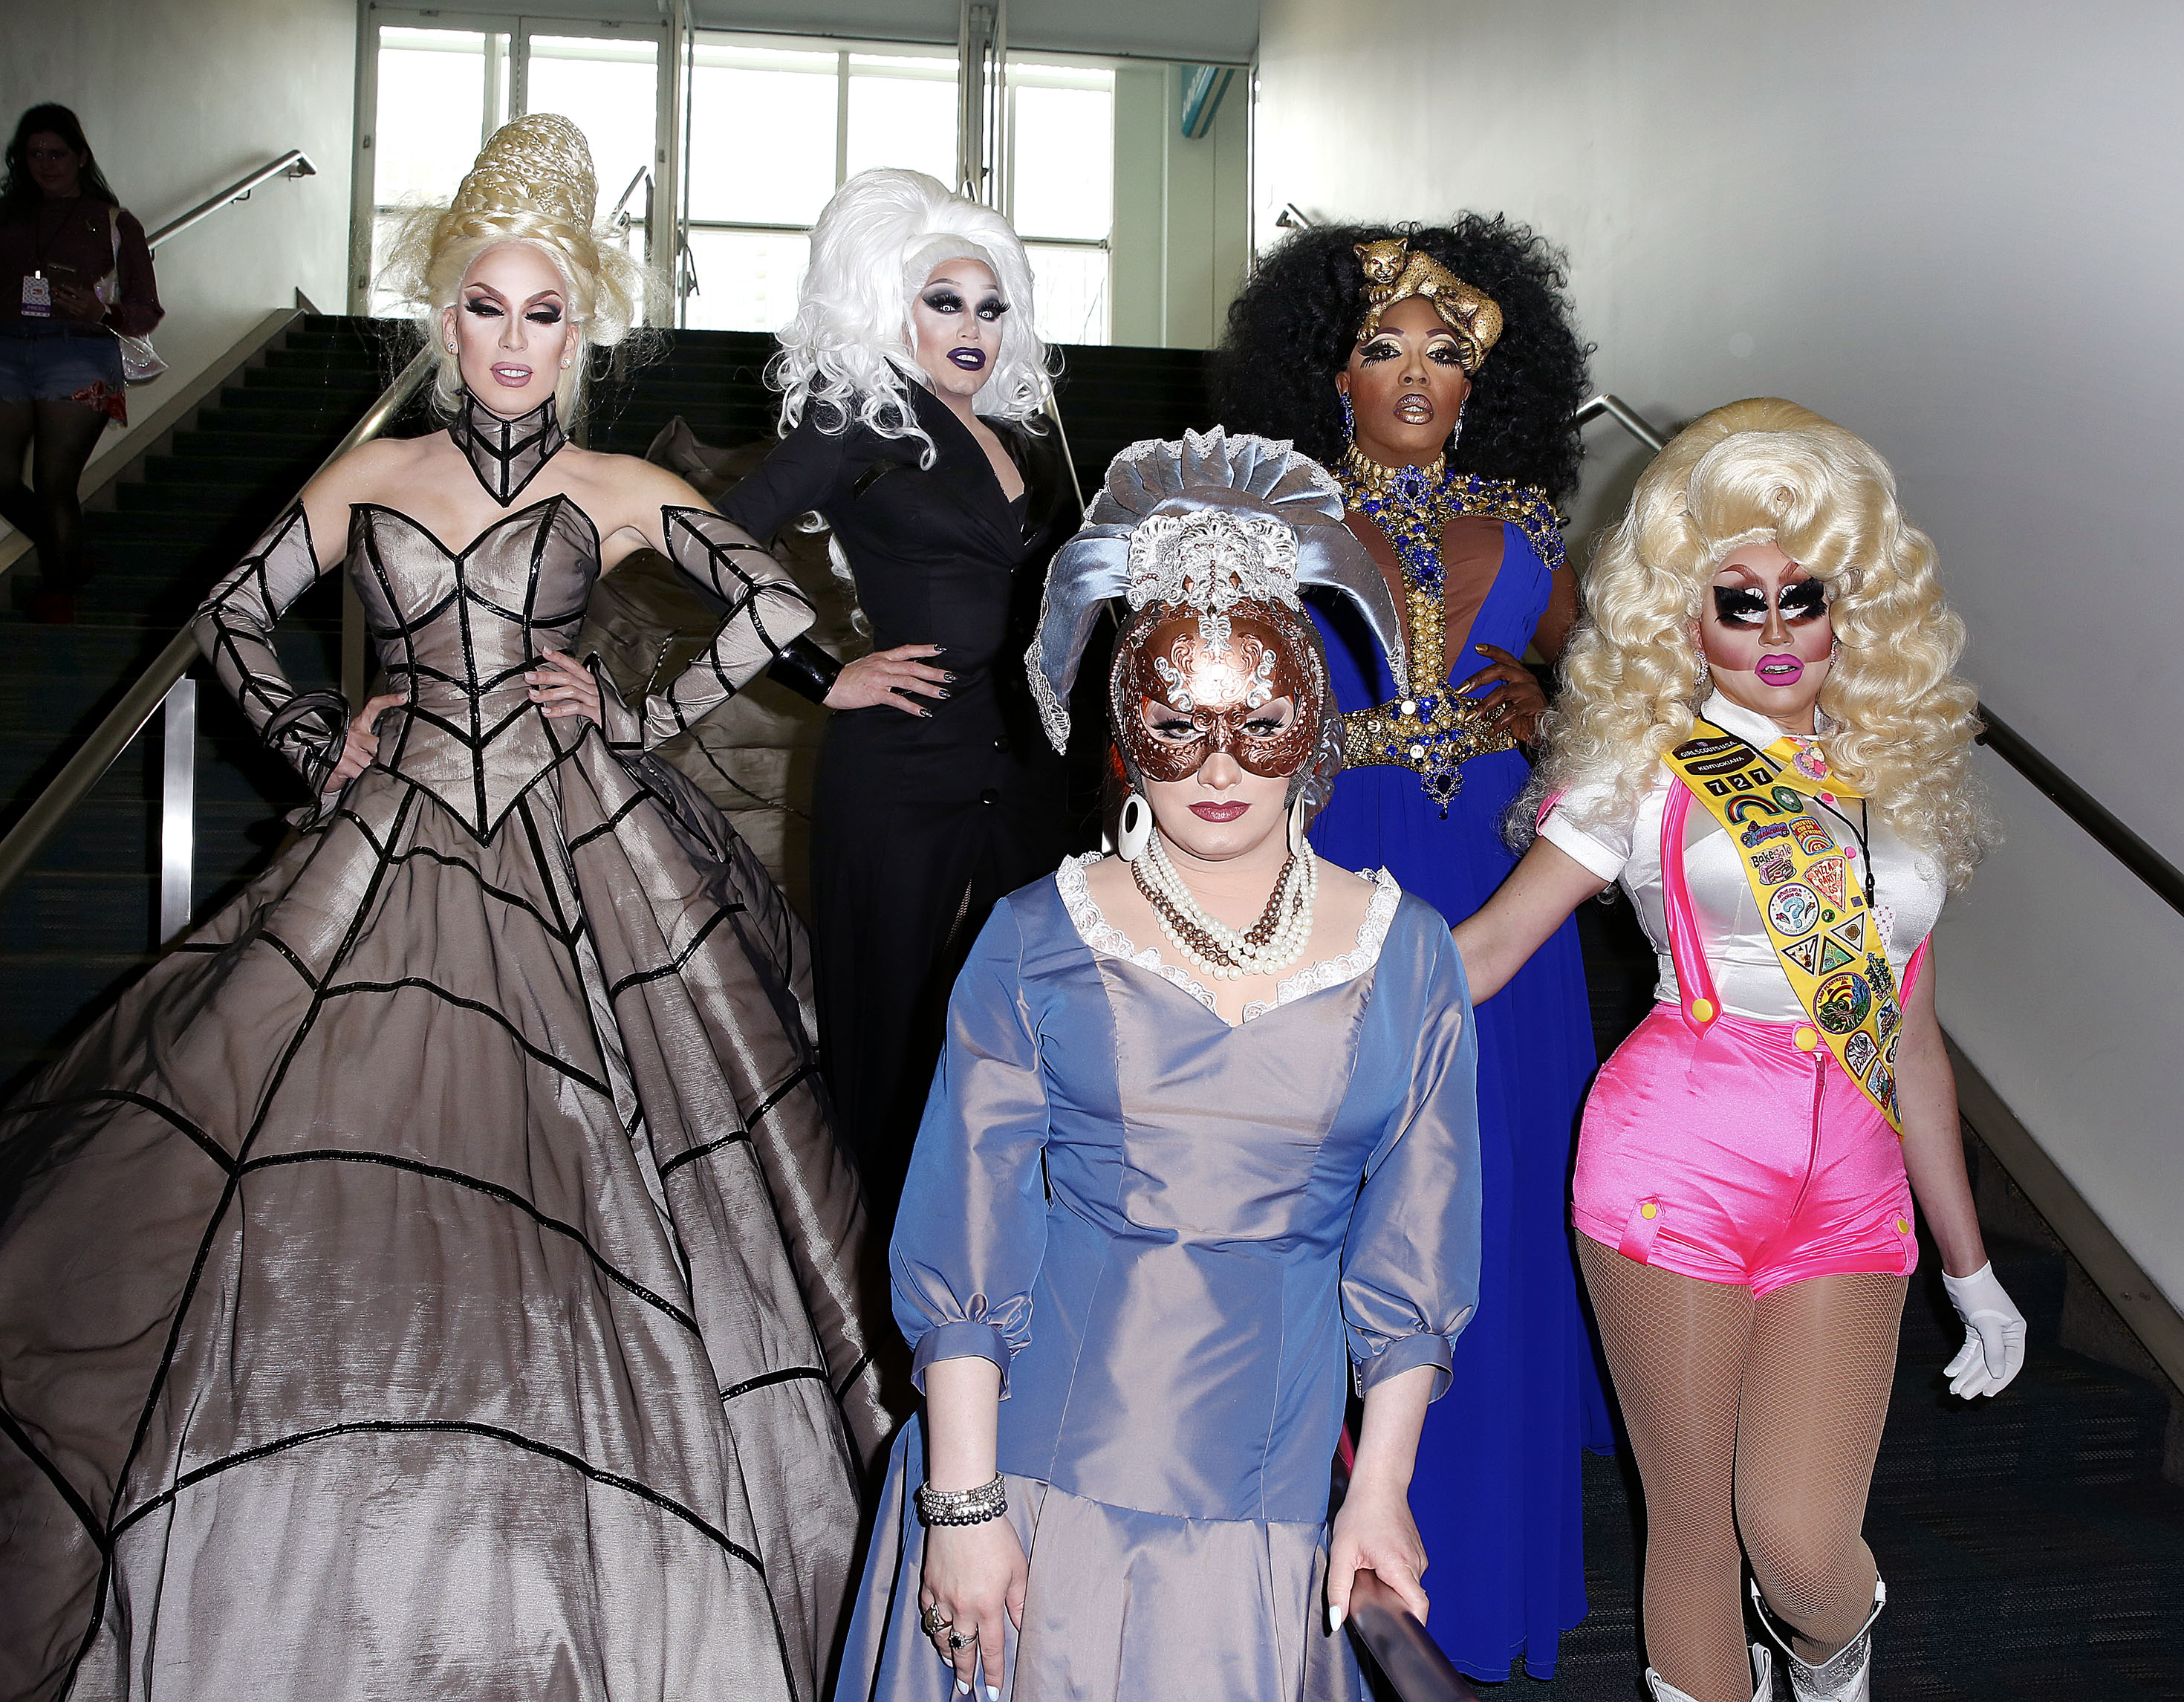 Alaska Sharon Needles Jinkx Monsoon Trixie Mattel Be Be Zahara Benet Dragcon